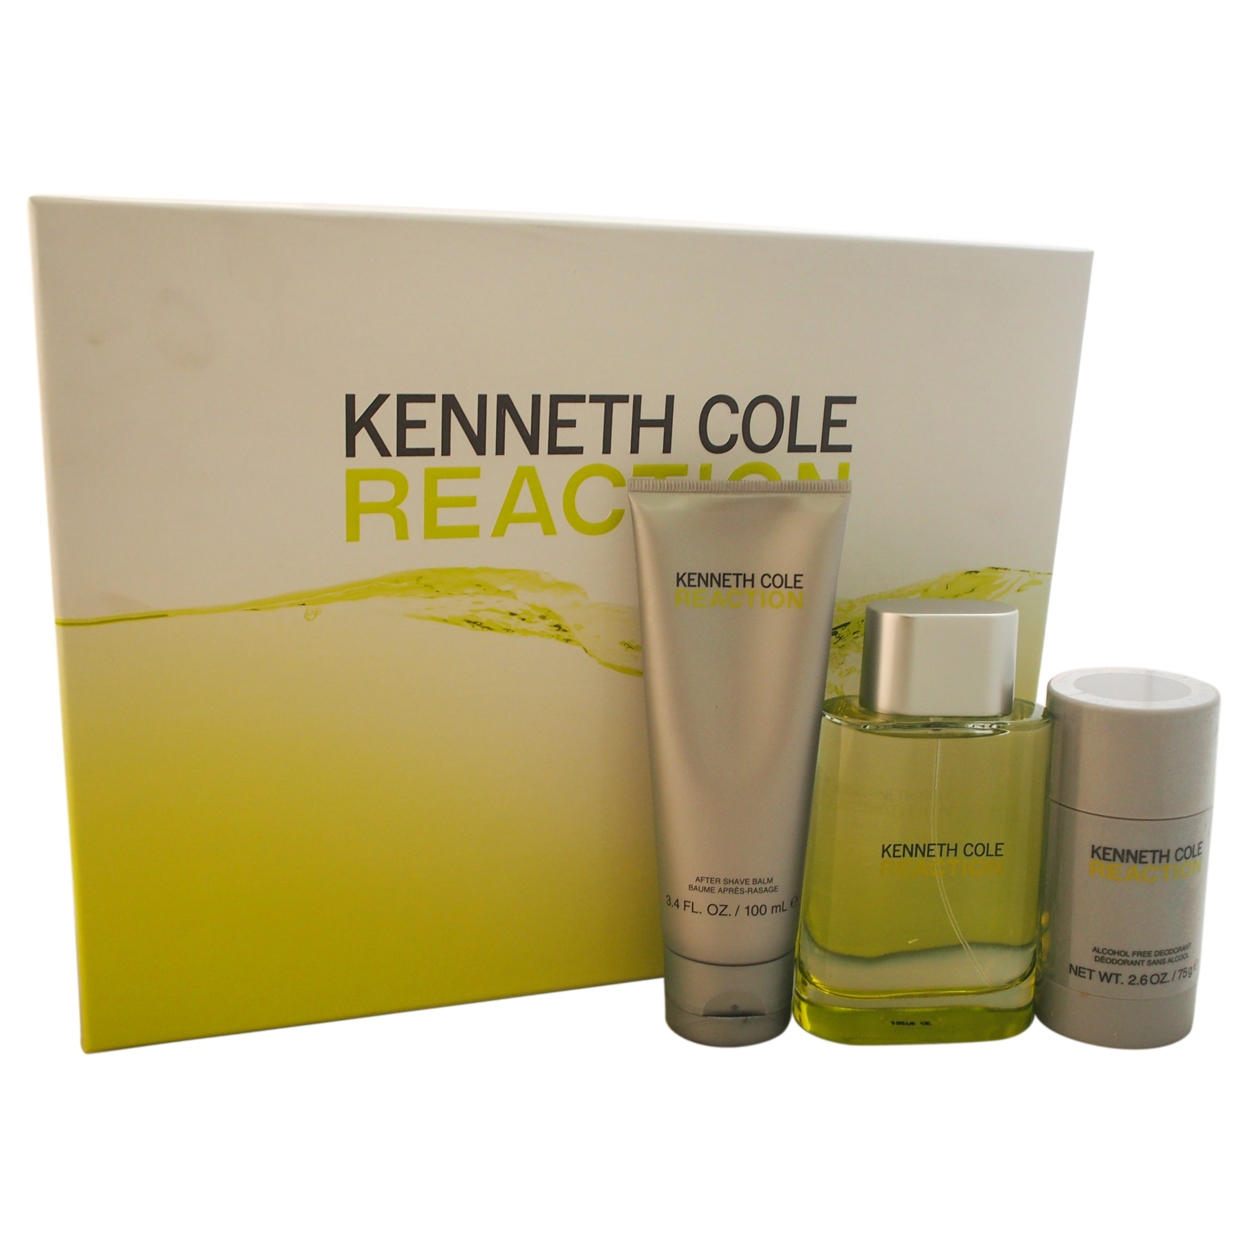 Kenneth Cole Reaction by Kenneth Cole for Men - 3 Pc Gift Set 3.4oz EDT Spray, 3.4oz After Shave Balm, 2.6oz Deodorant Stick ремень kenneth cole reaction mens leather